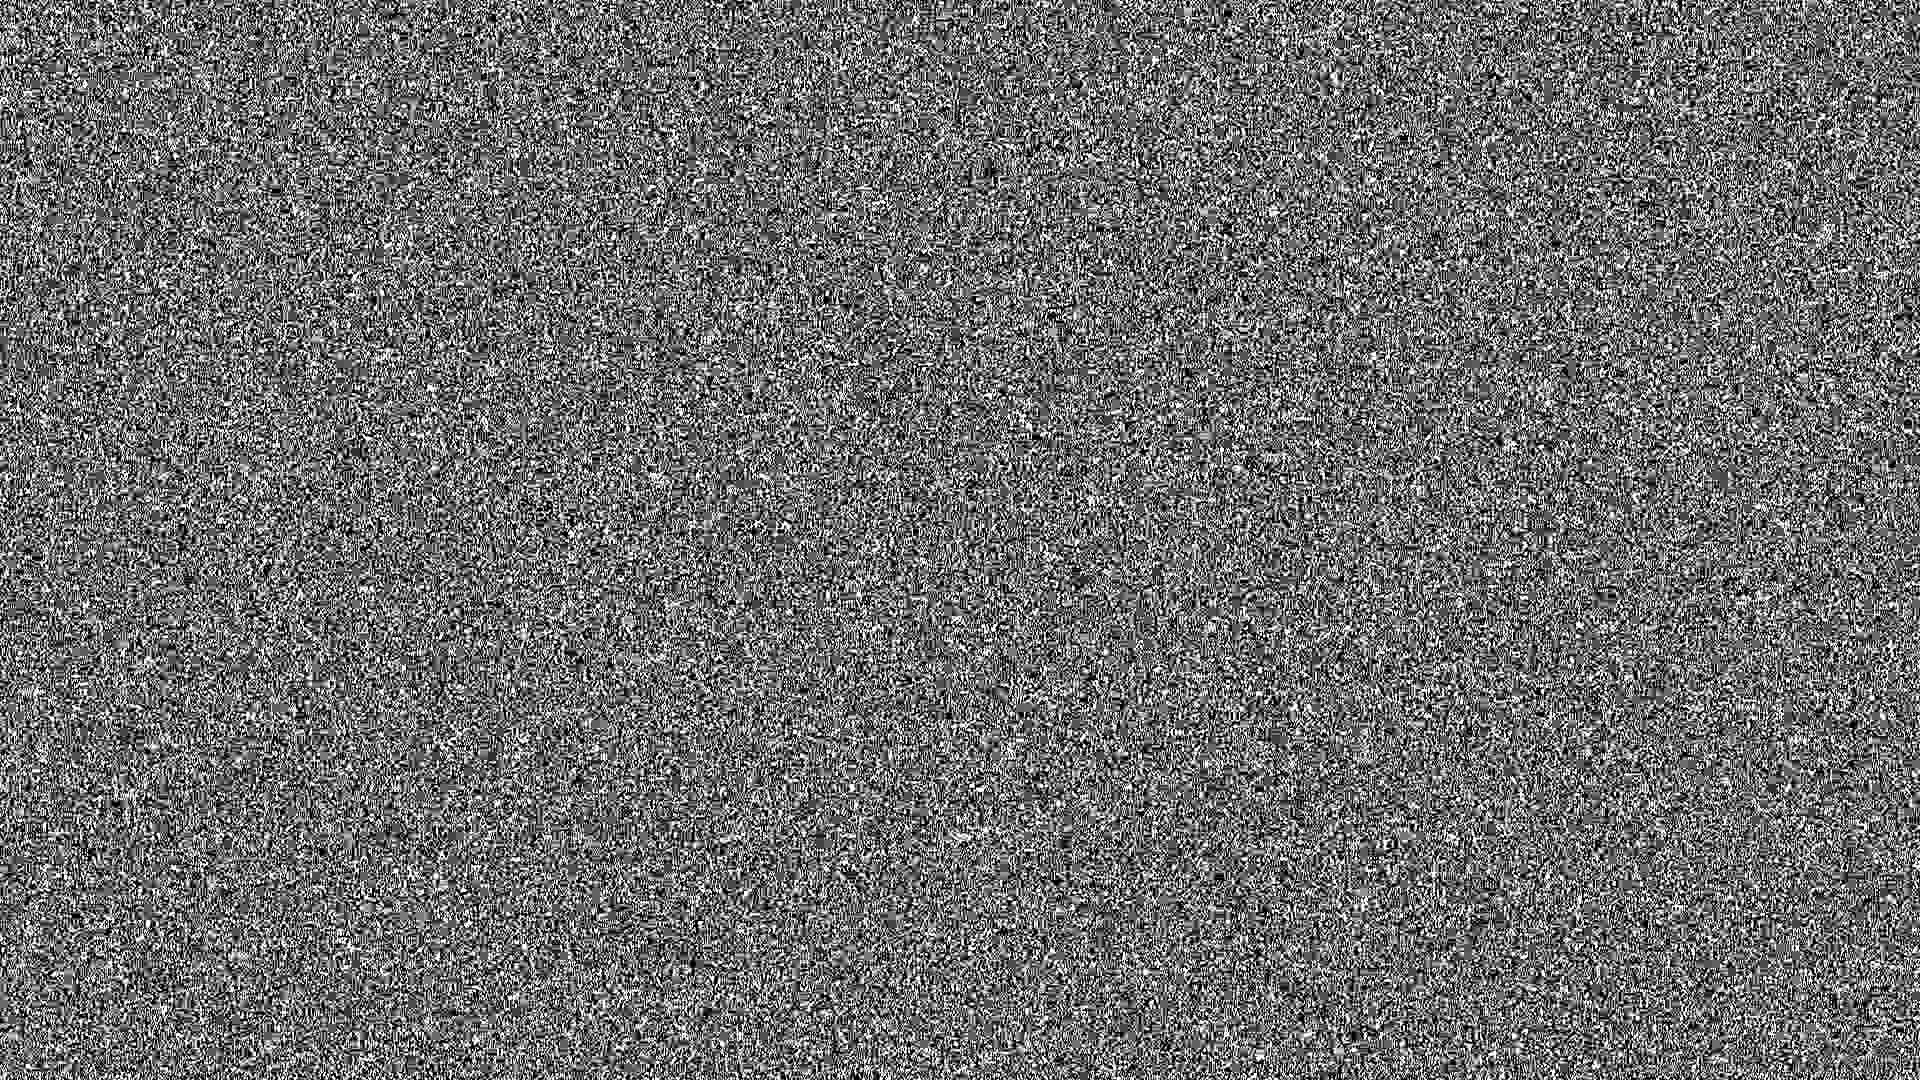 Images of Office Background Noise - #rock-cafe